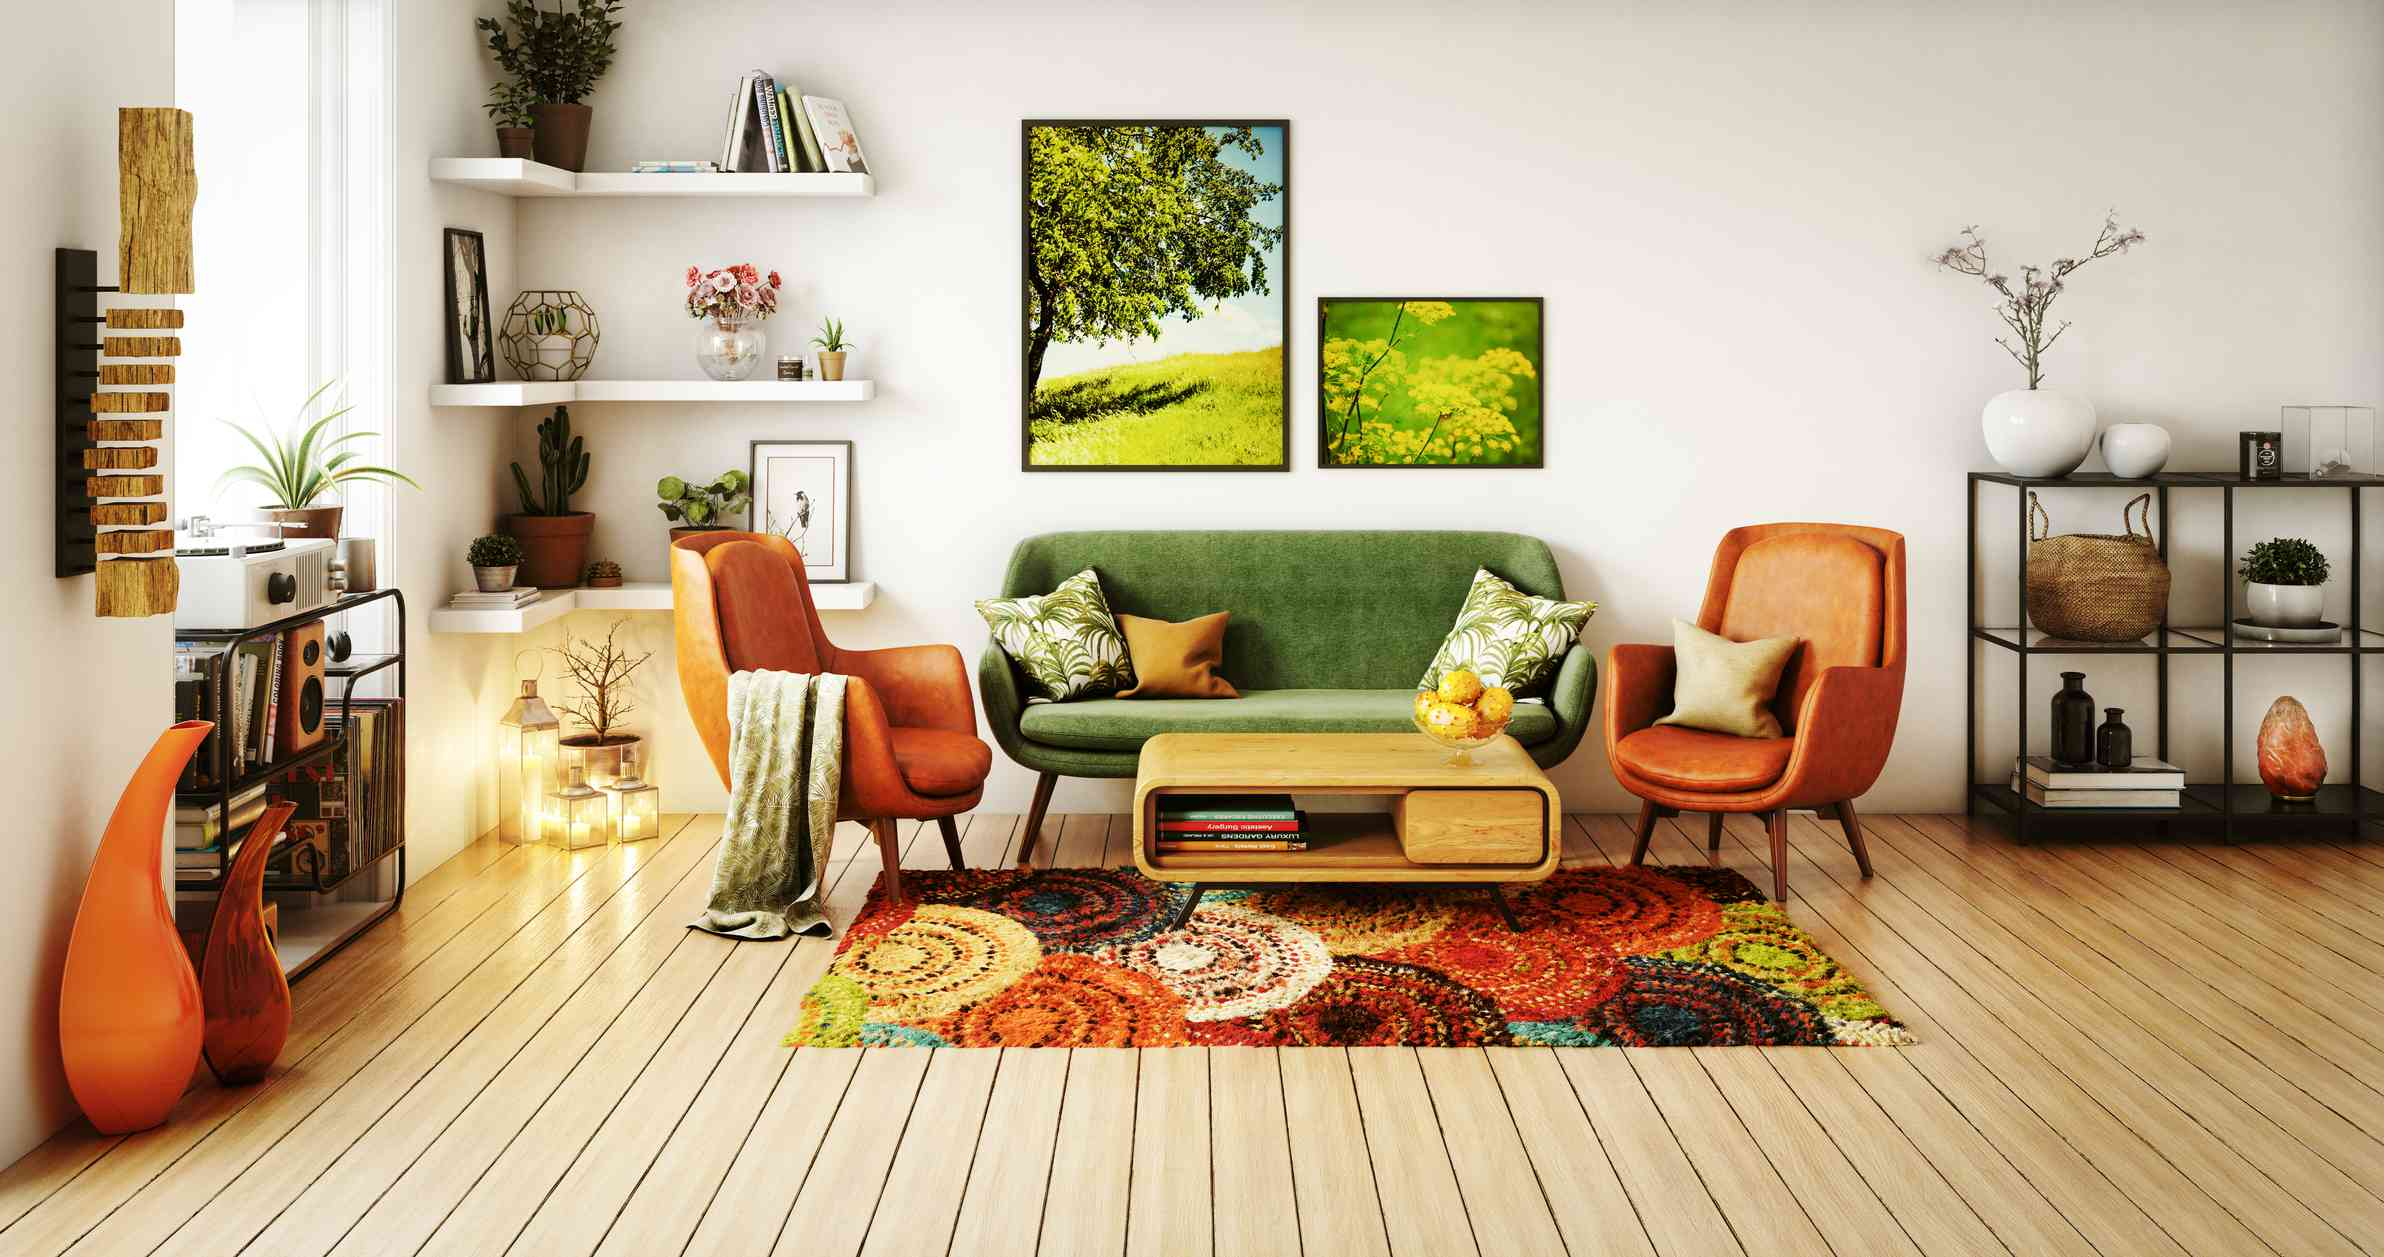 A retro living room decorated with 70s furniture and patterns